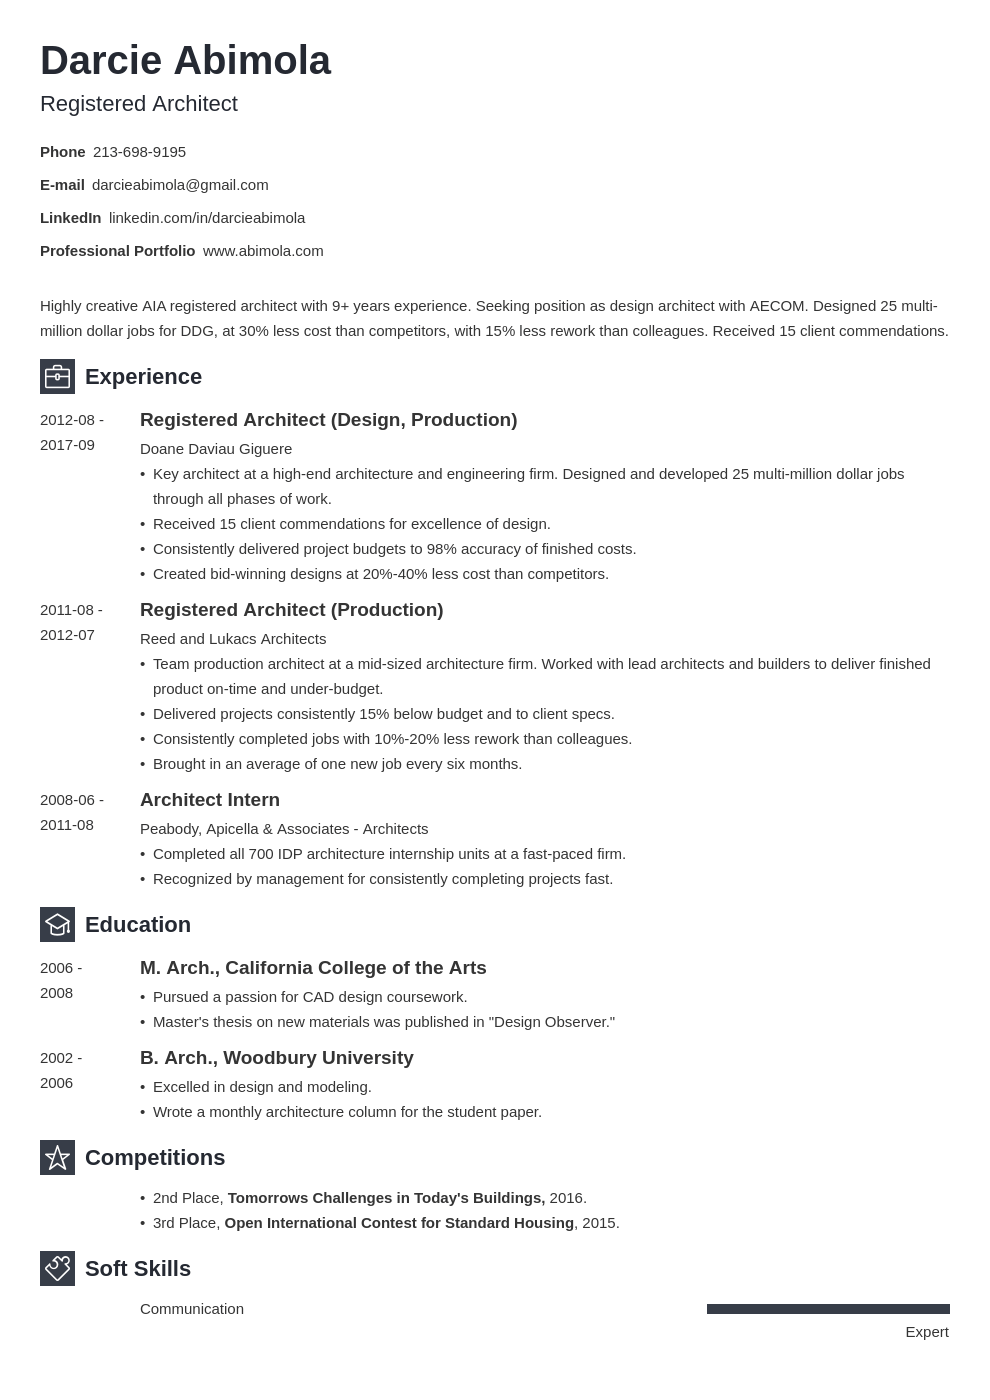 Architecture Resume Example For An Architect 2020 Template